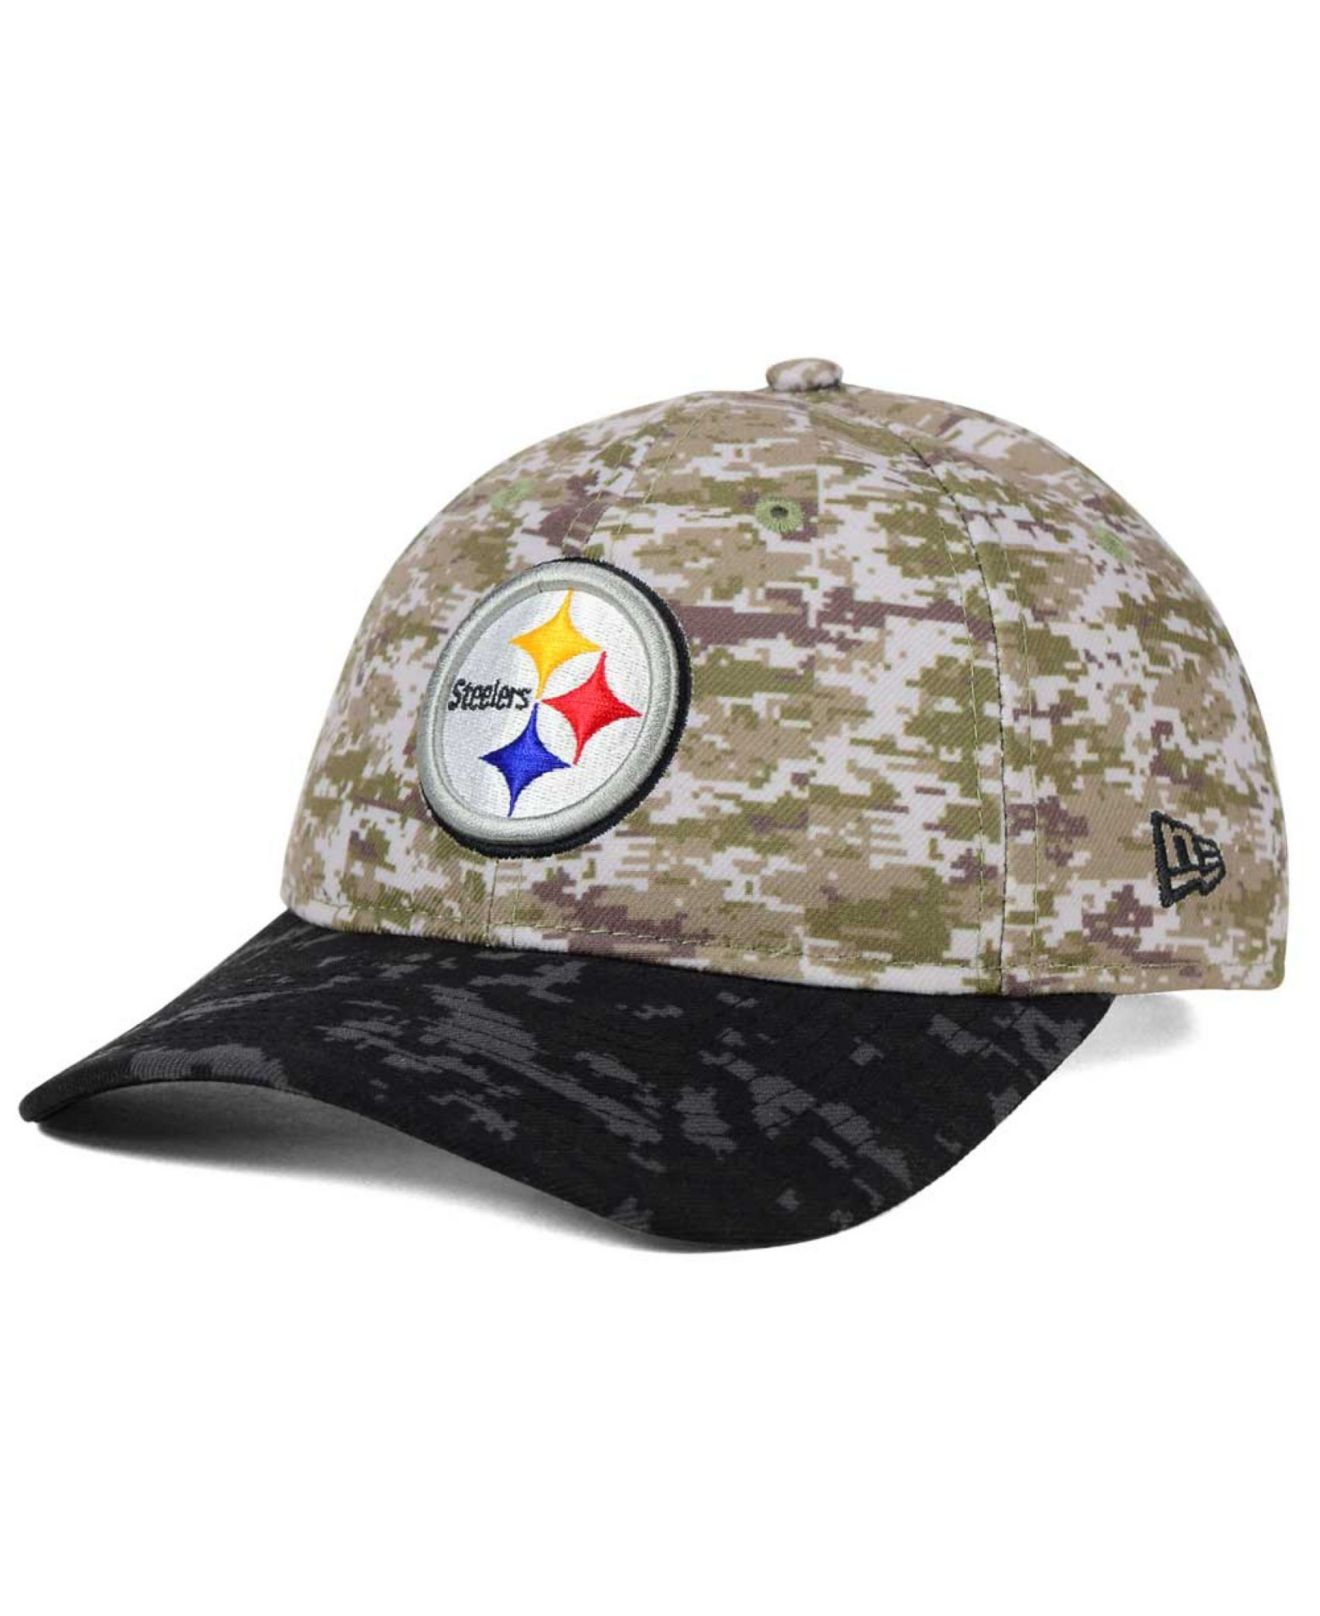 innovative design f6913 17205 netherlands pittsburgh steelers salute to service hat f7d7a ...